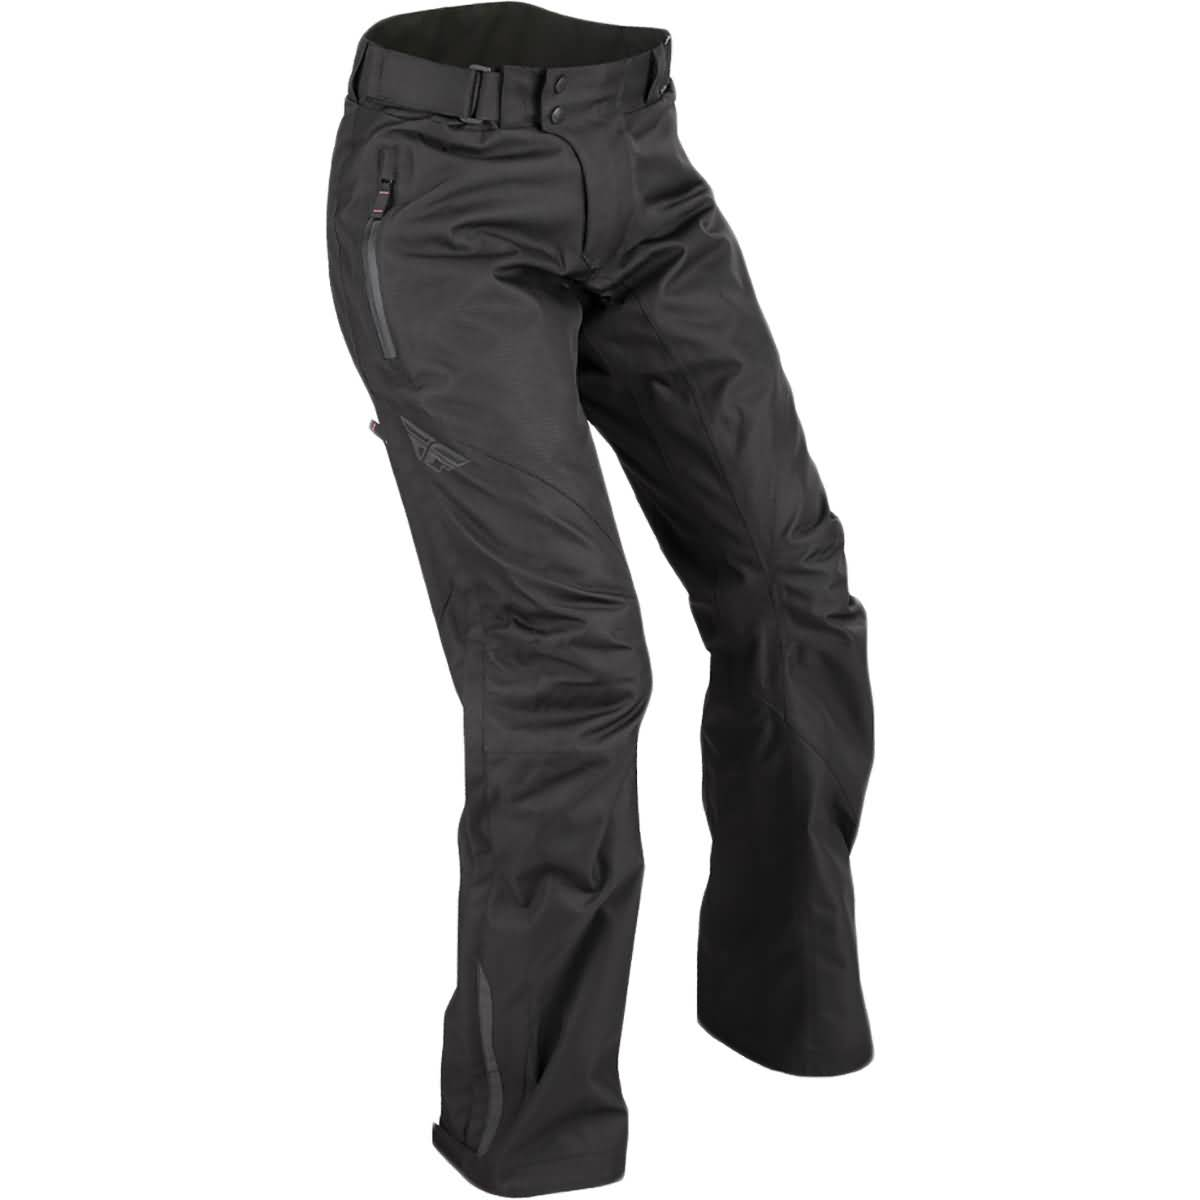 Fly Racing Butane Overpant Women's Street Pants-478